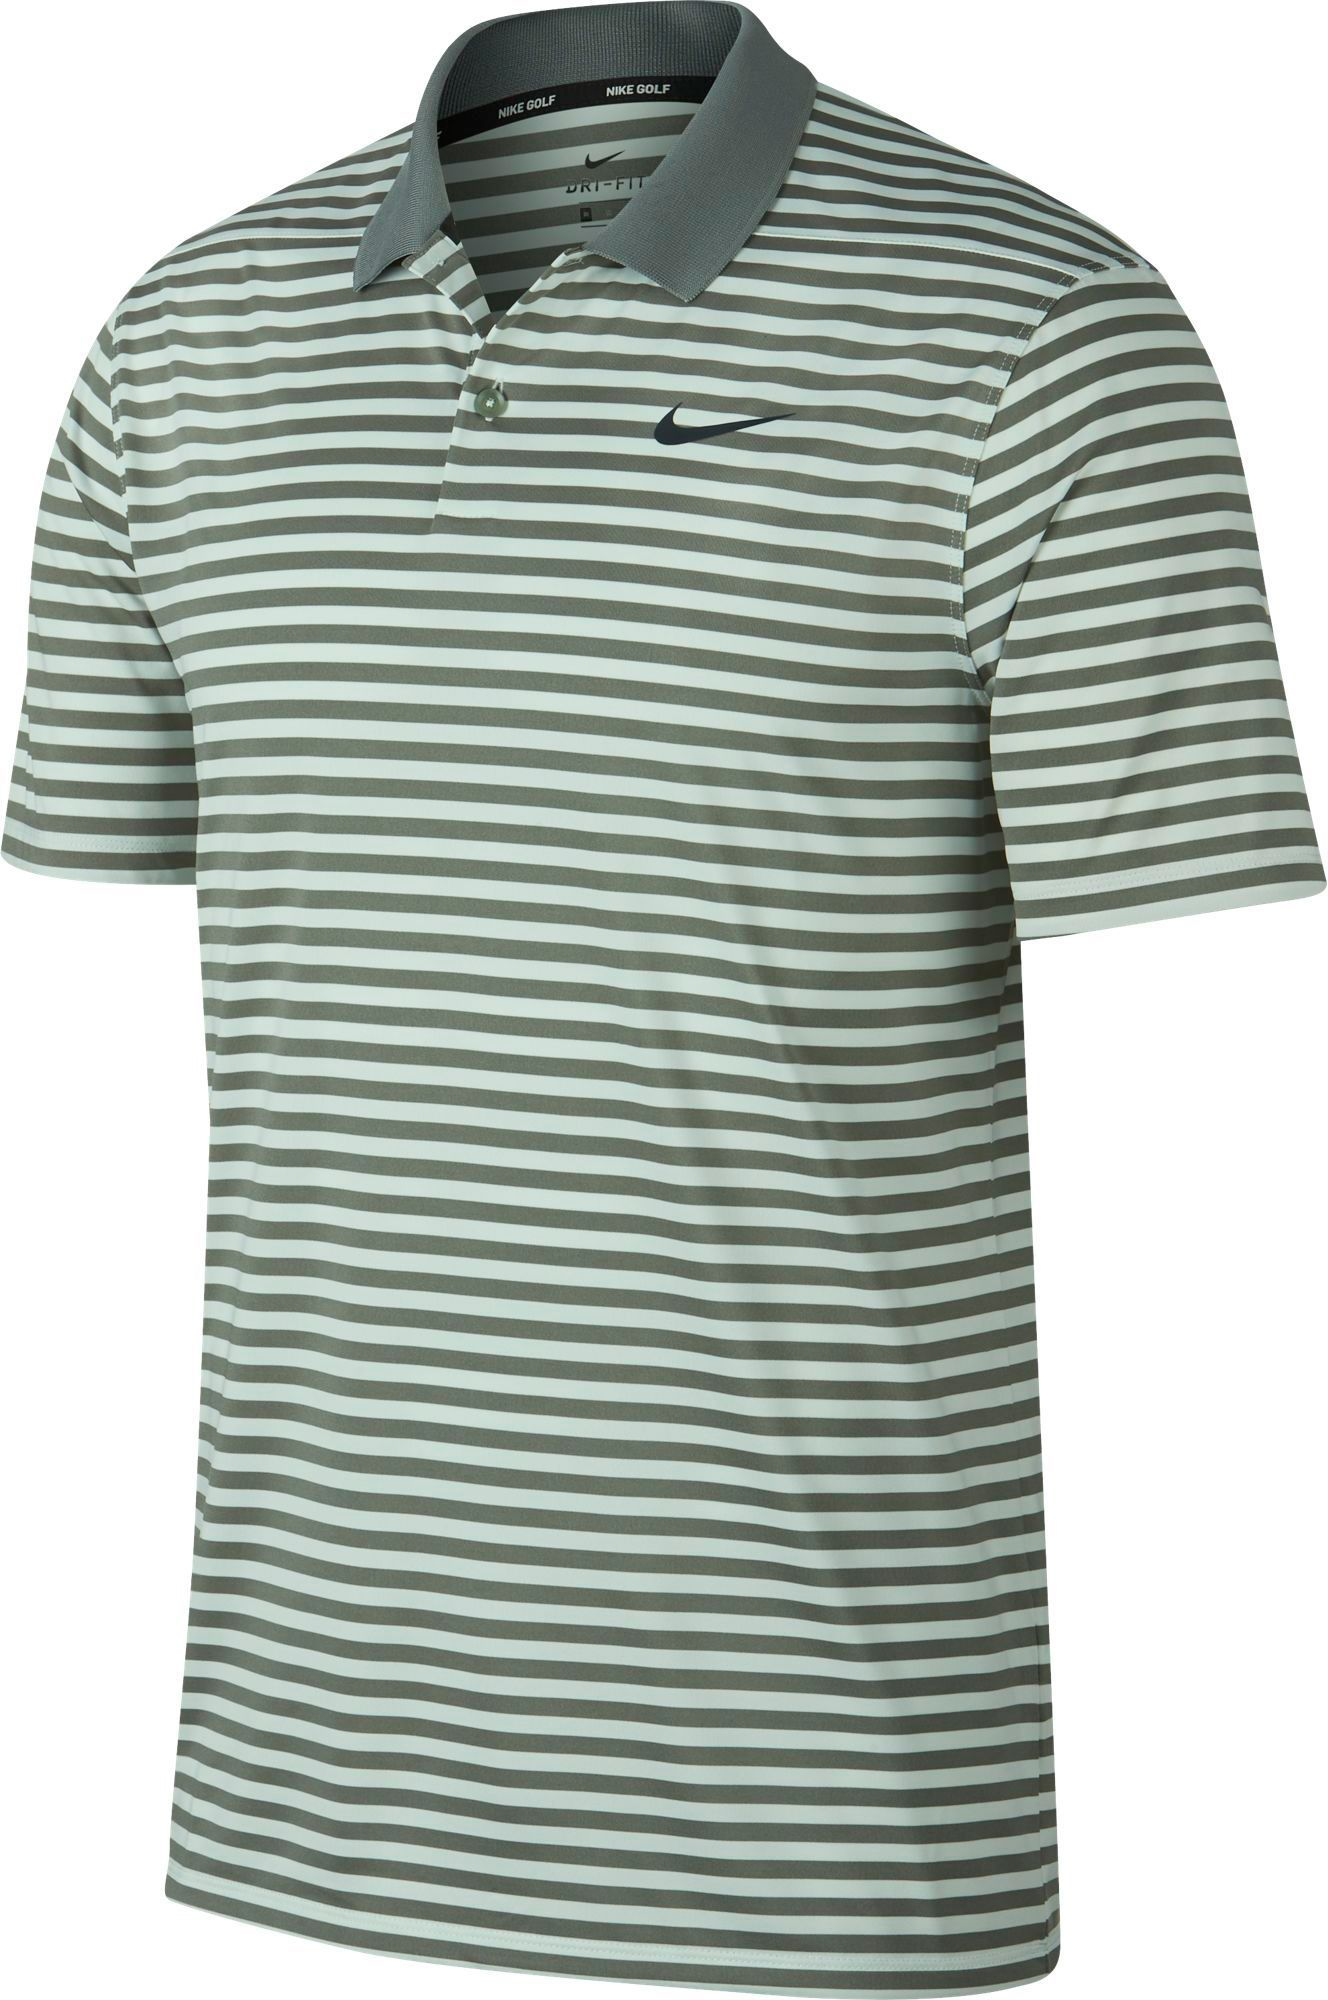 2a90b2ab Nike Men's Striped Dry Victory Golf Polo, Size: Small, Red in 2019 ...